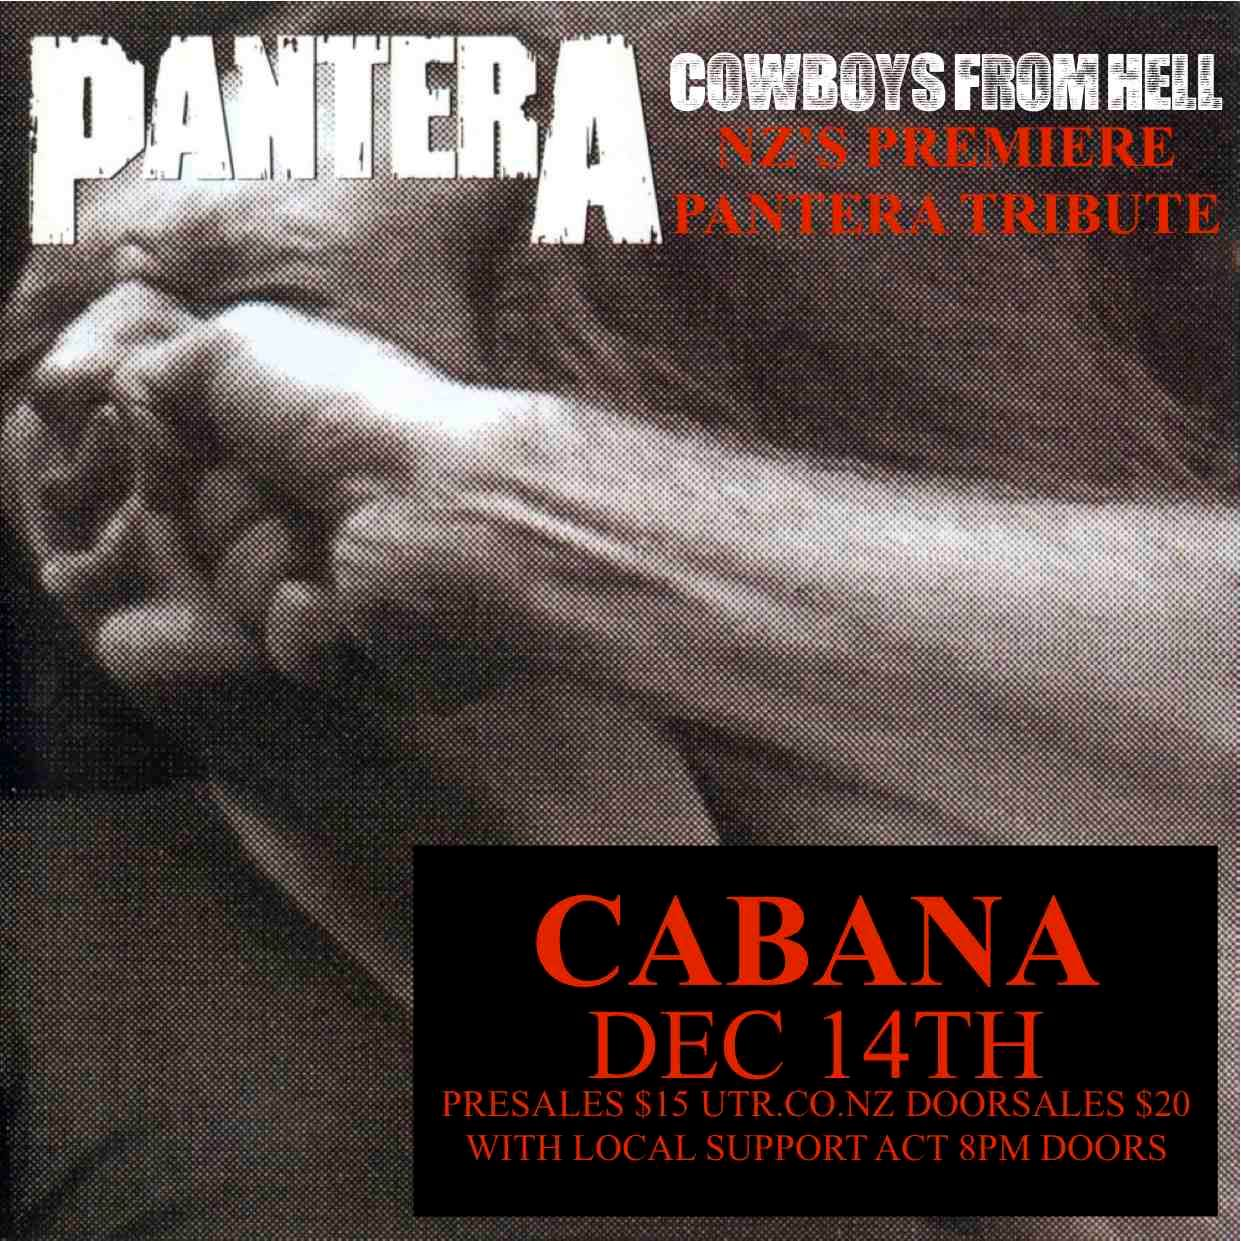 Cowboys From Hell (Pantera Tribute) - Tours at Undertheradar